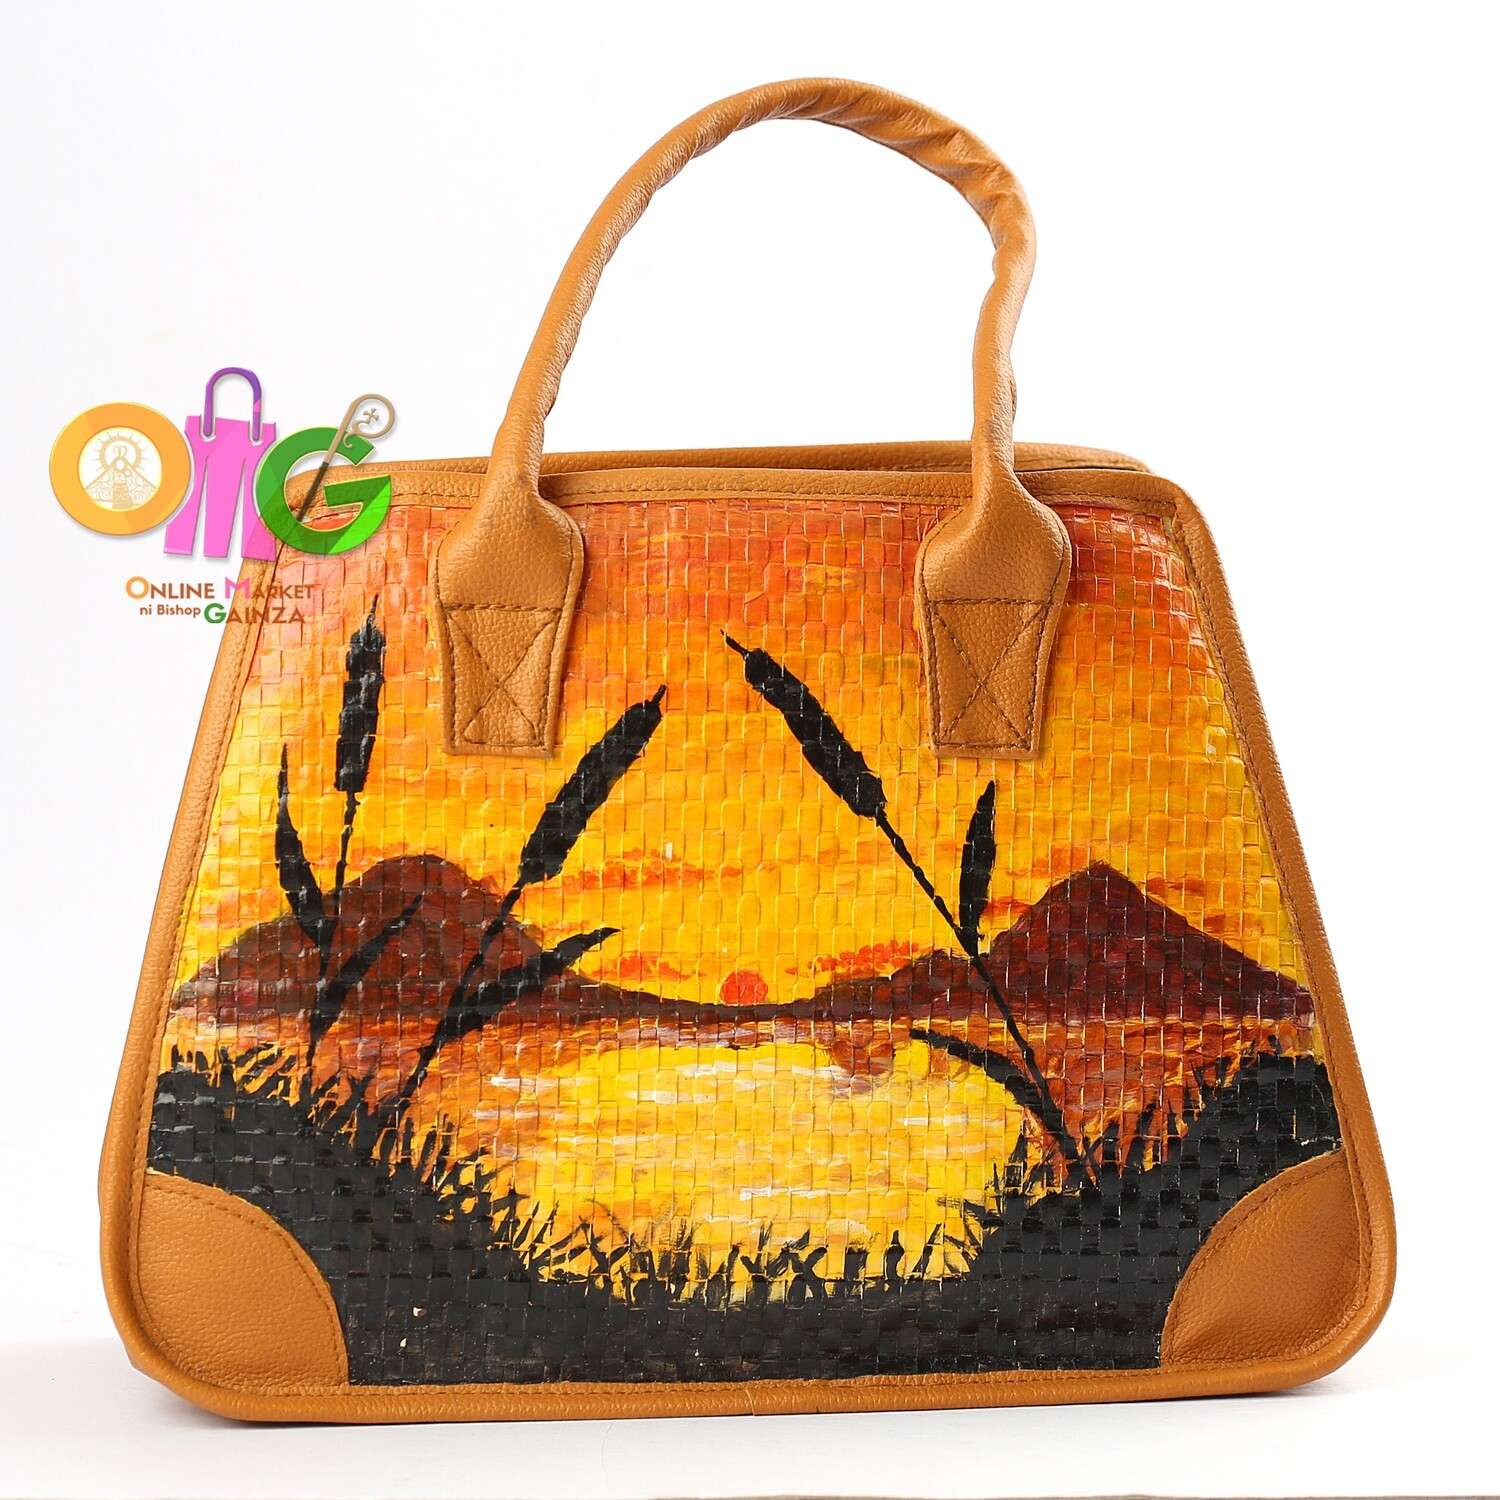 Lutmher Fancrafts - Hand And Embroidered Bag